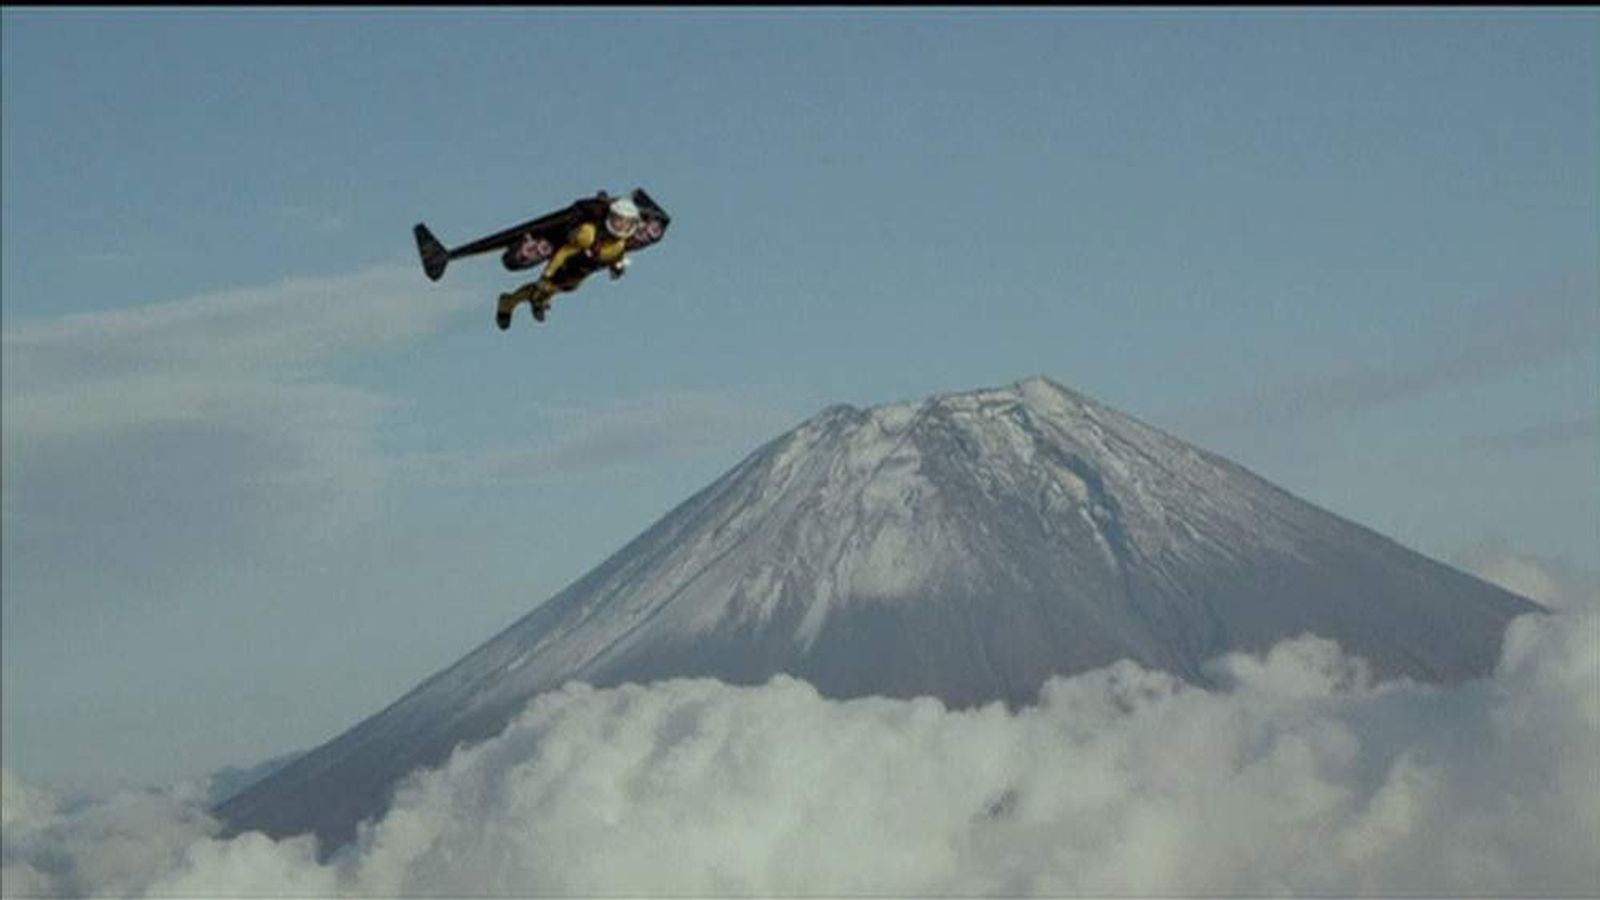 Jetman Yves Rossy flies over Japan's Mount Fuiji